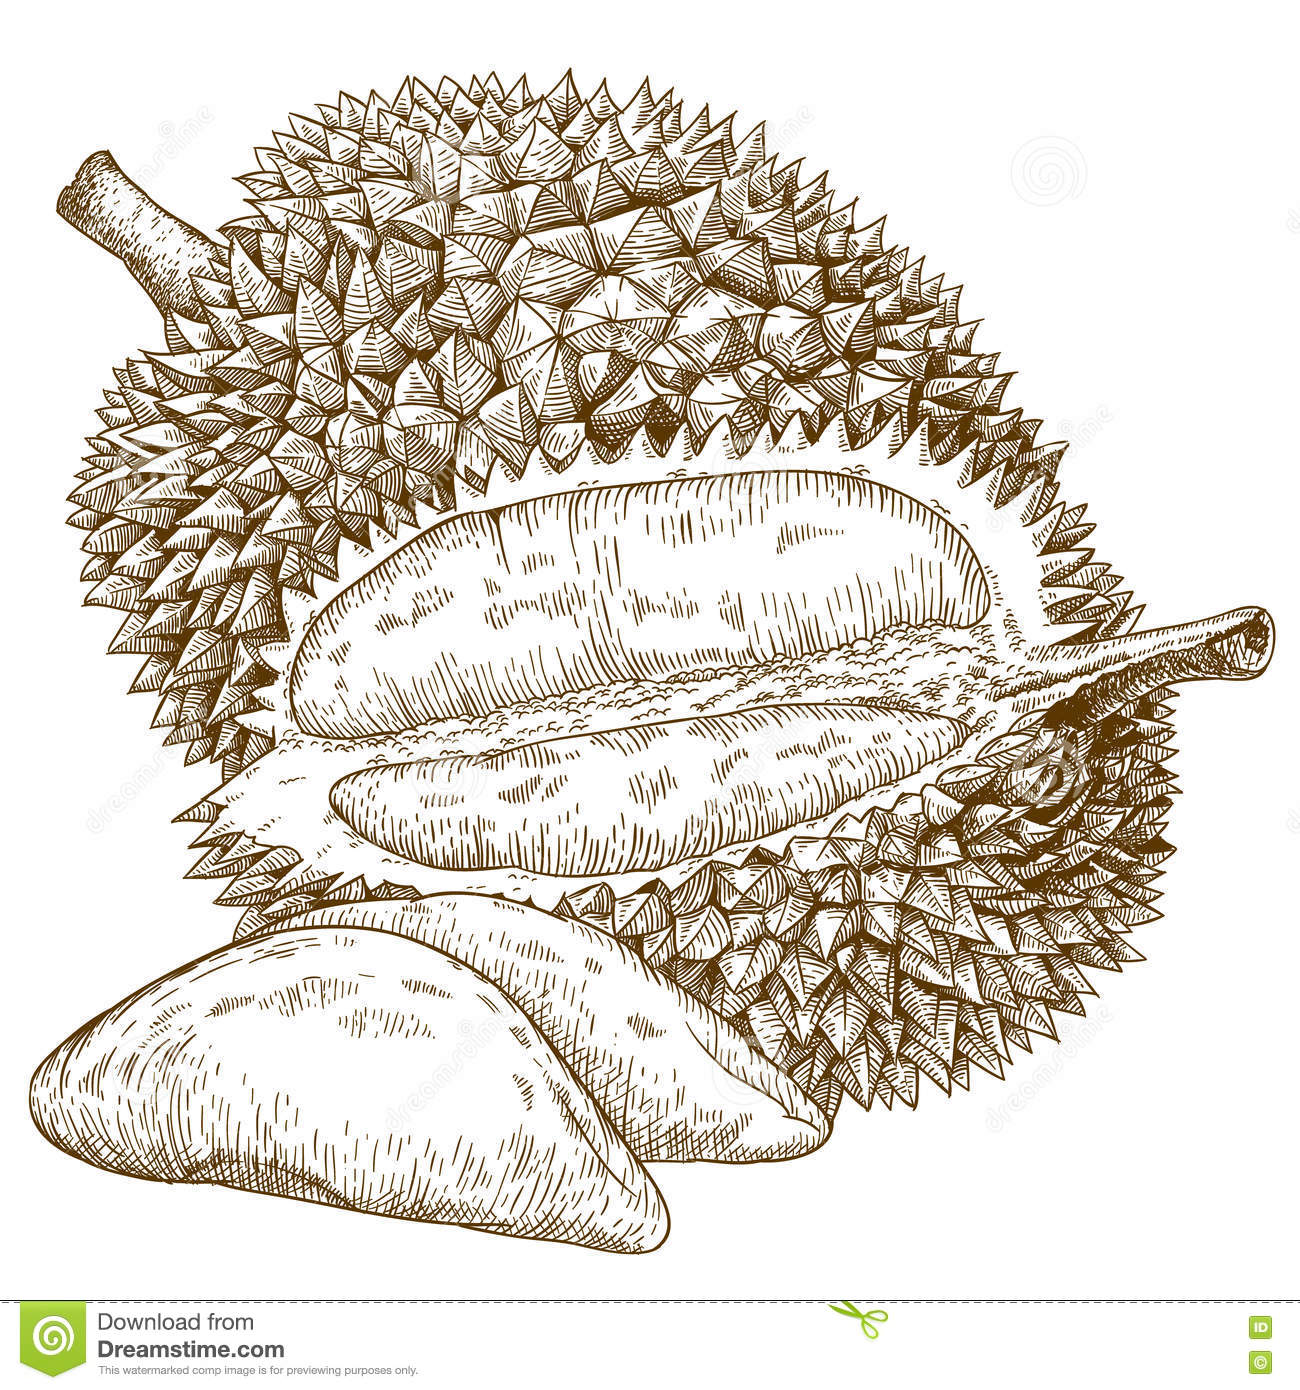 Engraving antique illustration of durian fruit